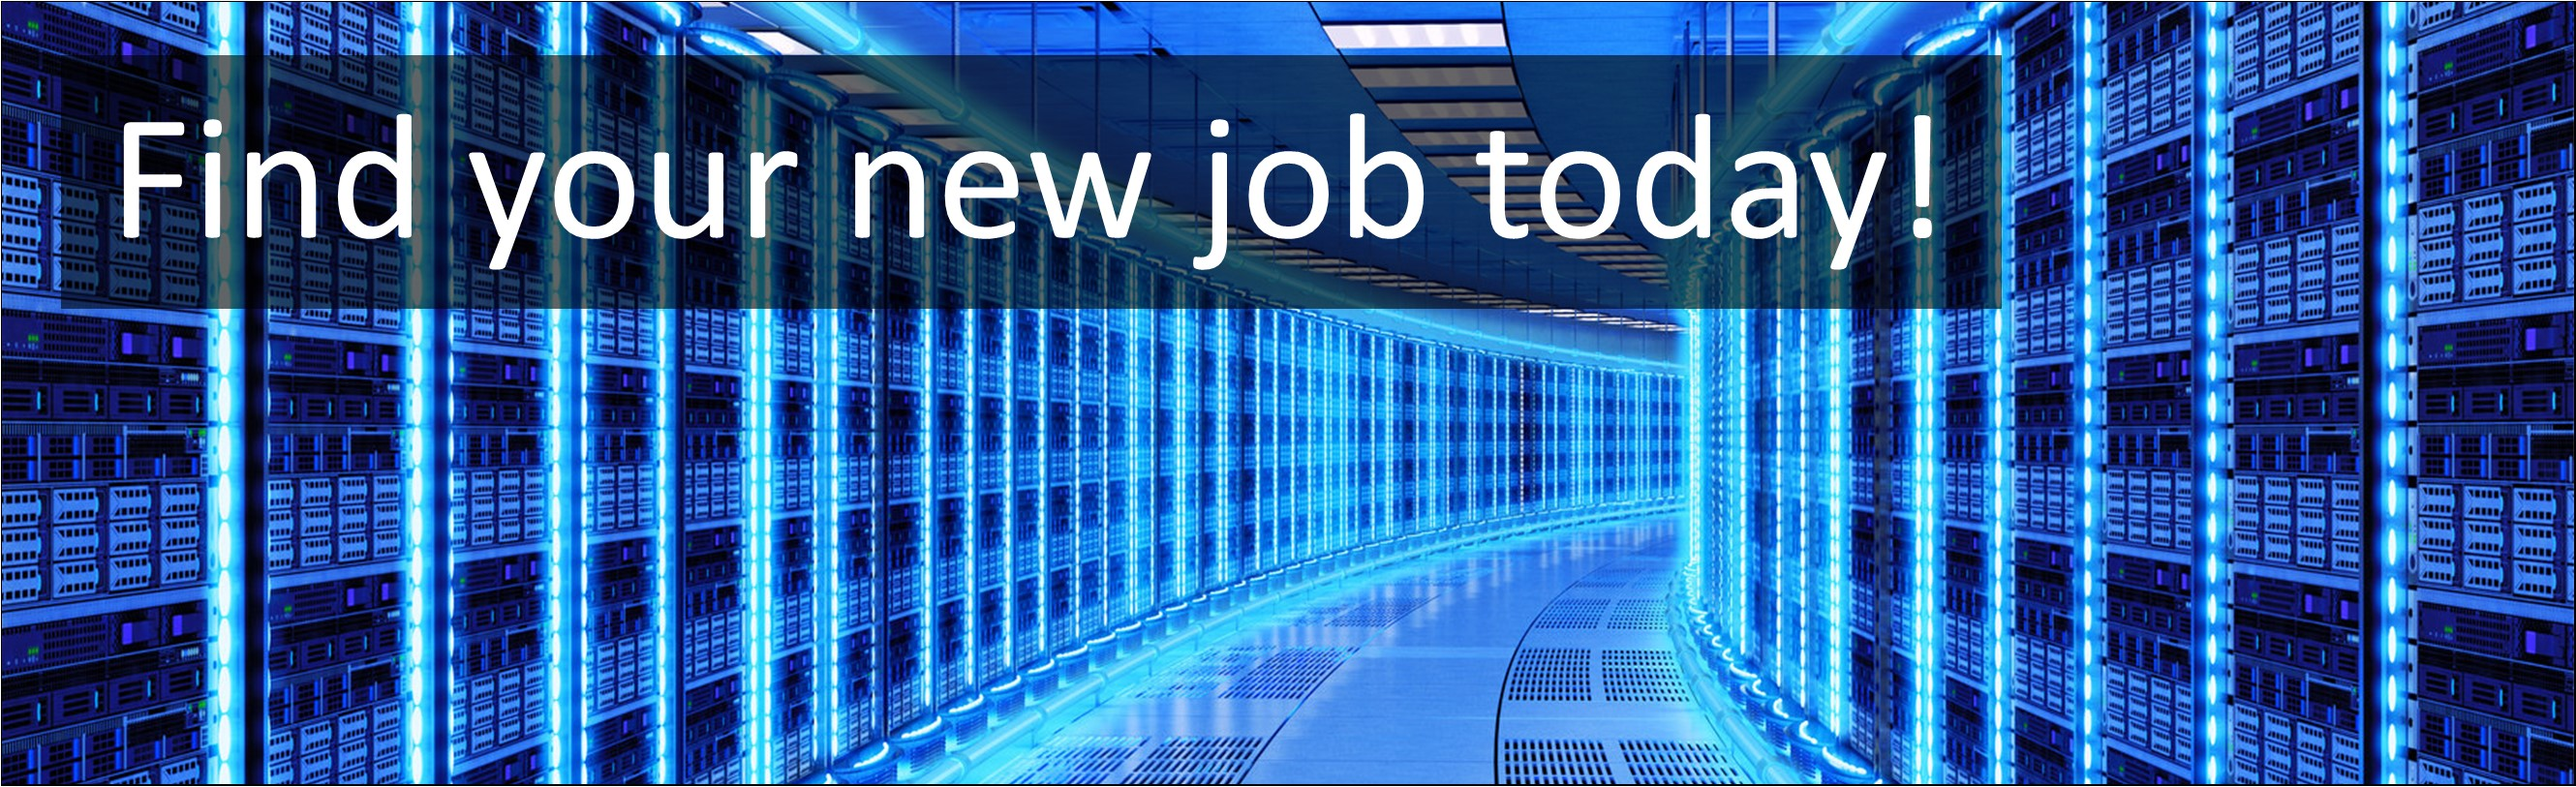 IT & Communication Jobs. Senior Data Analyst Jobs, Careers & Vacancies in High Wycombe, Buckinghamshire. Advertised by AWD online – Multi-Job Board Advertising and CV Sourcing Recruitment Services